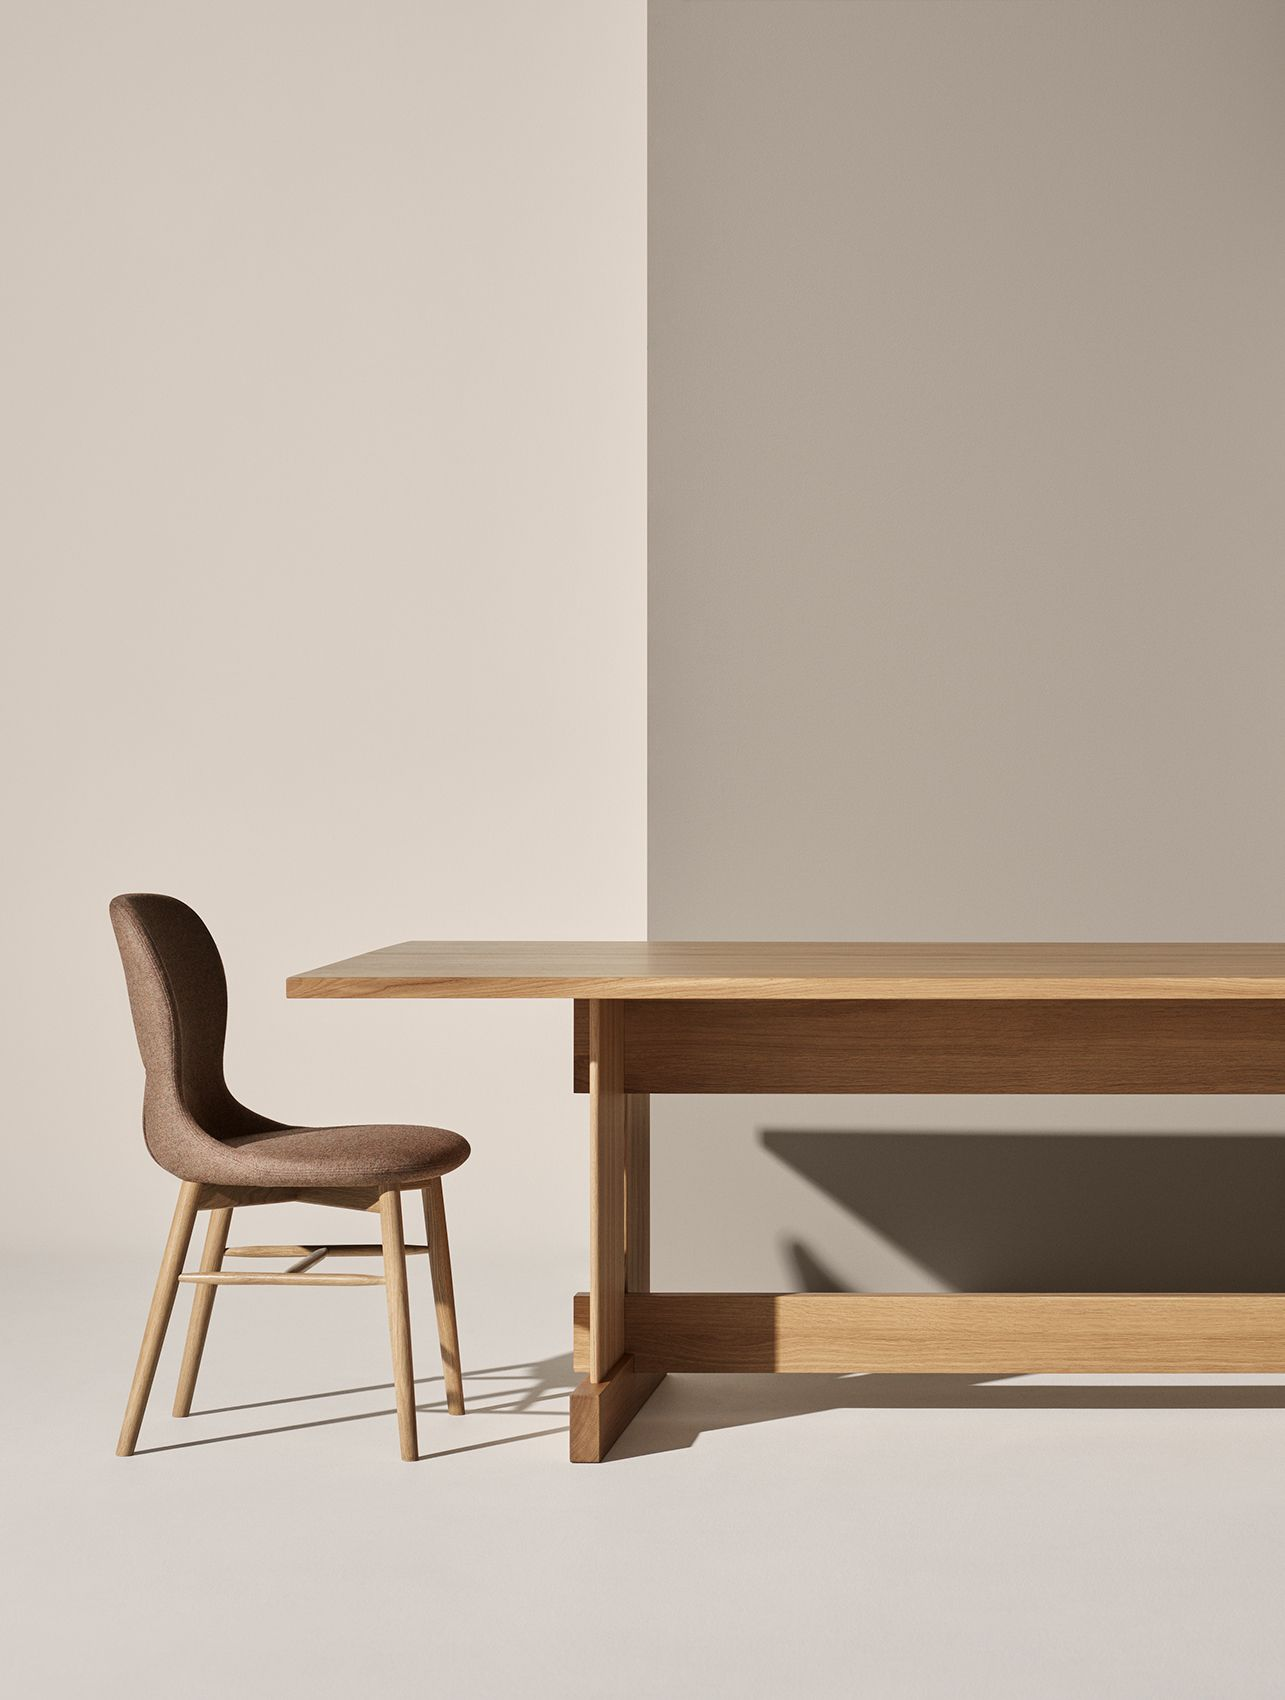 Incroyable Grande Table Is A Minimalist Table Created By Stockholm Based Designers  Note Design Studio. Big Things Stand Strong As They Say. Strong And  Timeless In The ...